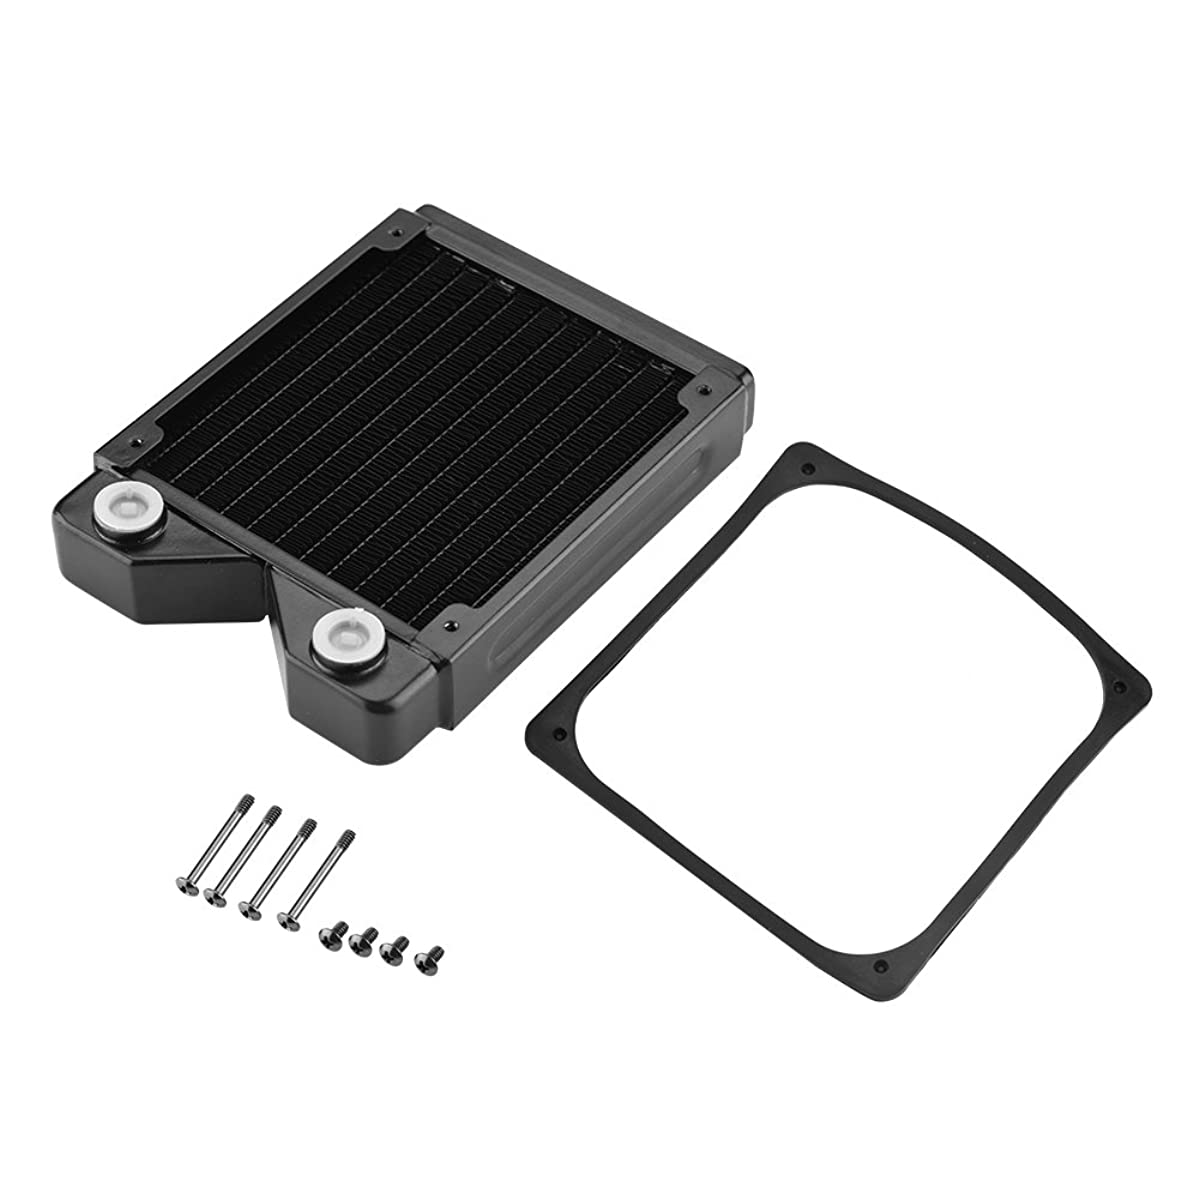 fosa G1/4 Thread 120mm/240mm/360mm PC Water Heat Exchanger Computer Copper Heat Radiator Heat Sink for Computer Water Cooling System(120 mm)